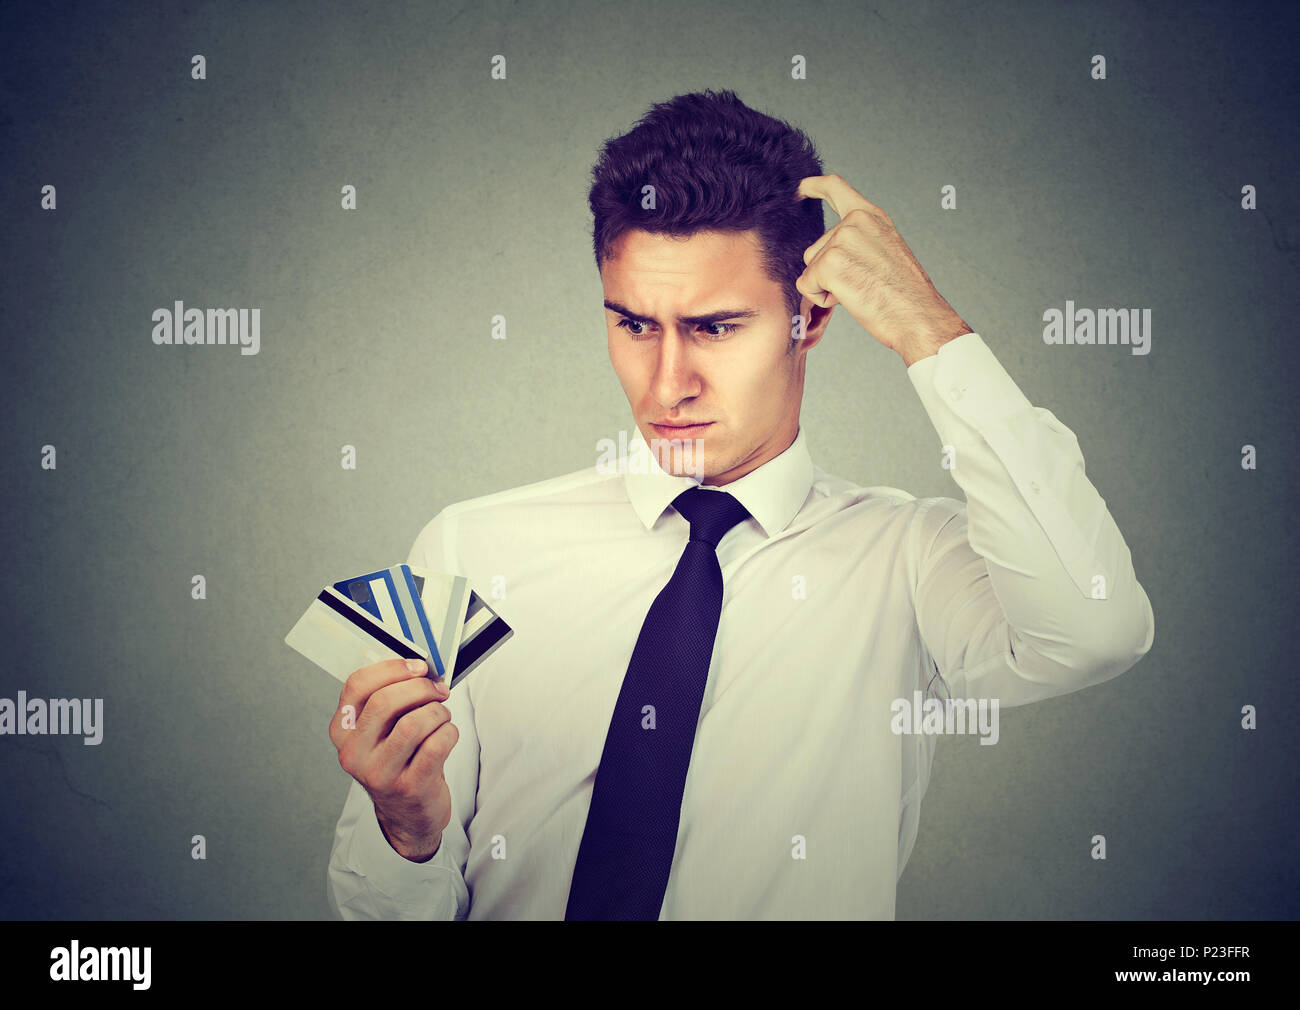 Confused man looking at many credit cards uncertain which one to choose isolated on gray background - Stock Image